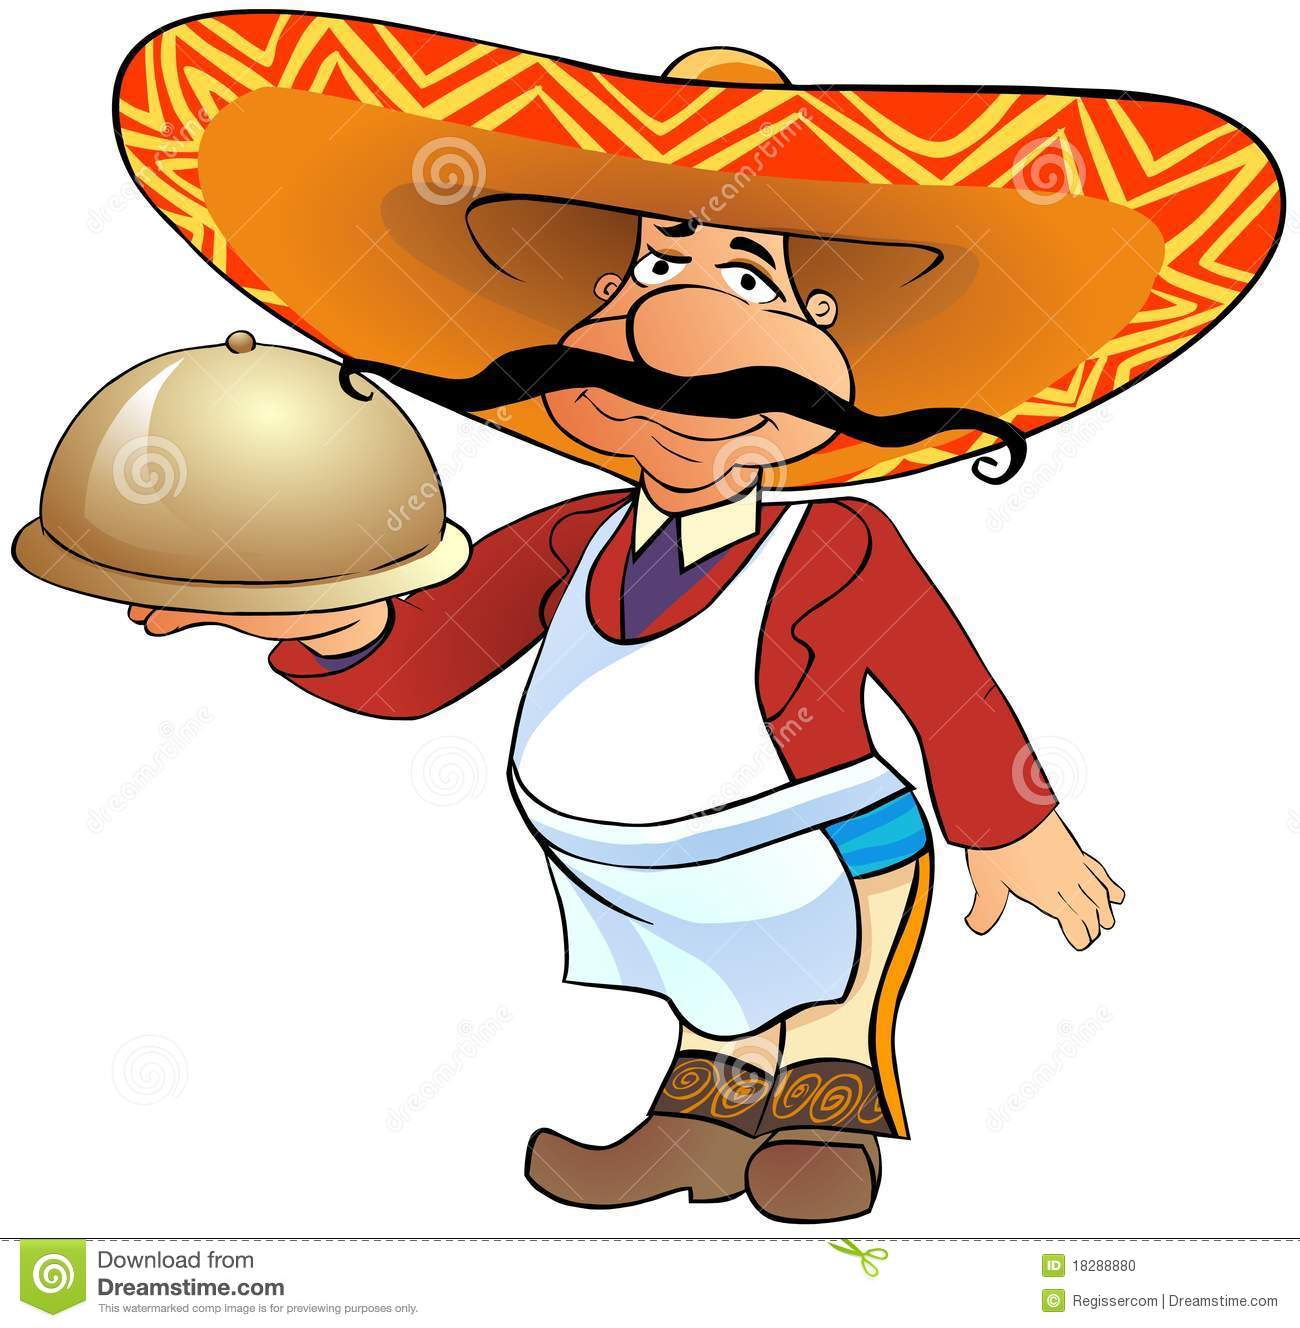 More similar stock images of ` Mexican waiter with a tray `